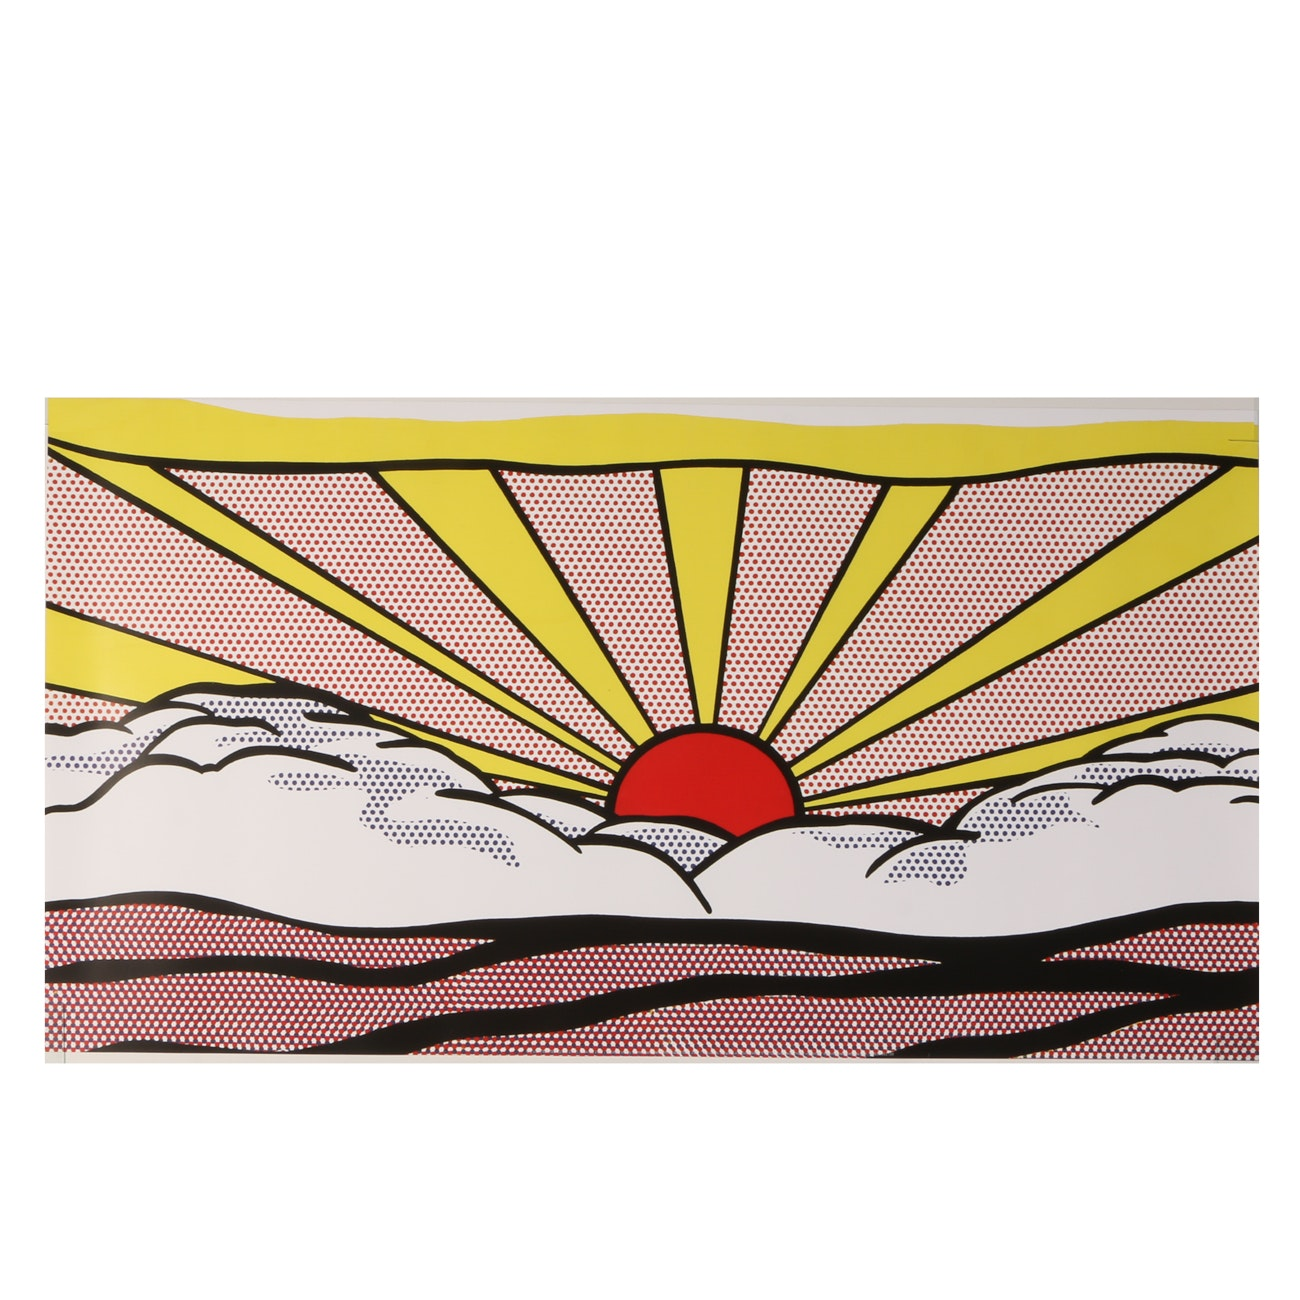 """Giclee on Paper After Roy Lichtenstein 1965 Oil Painting """"Sunrise"""""""